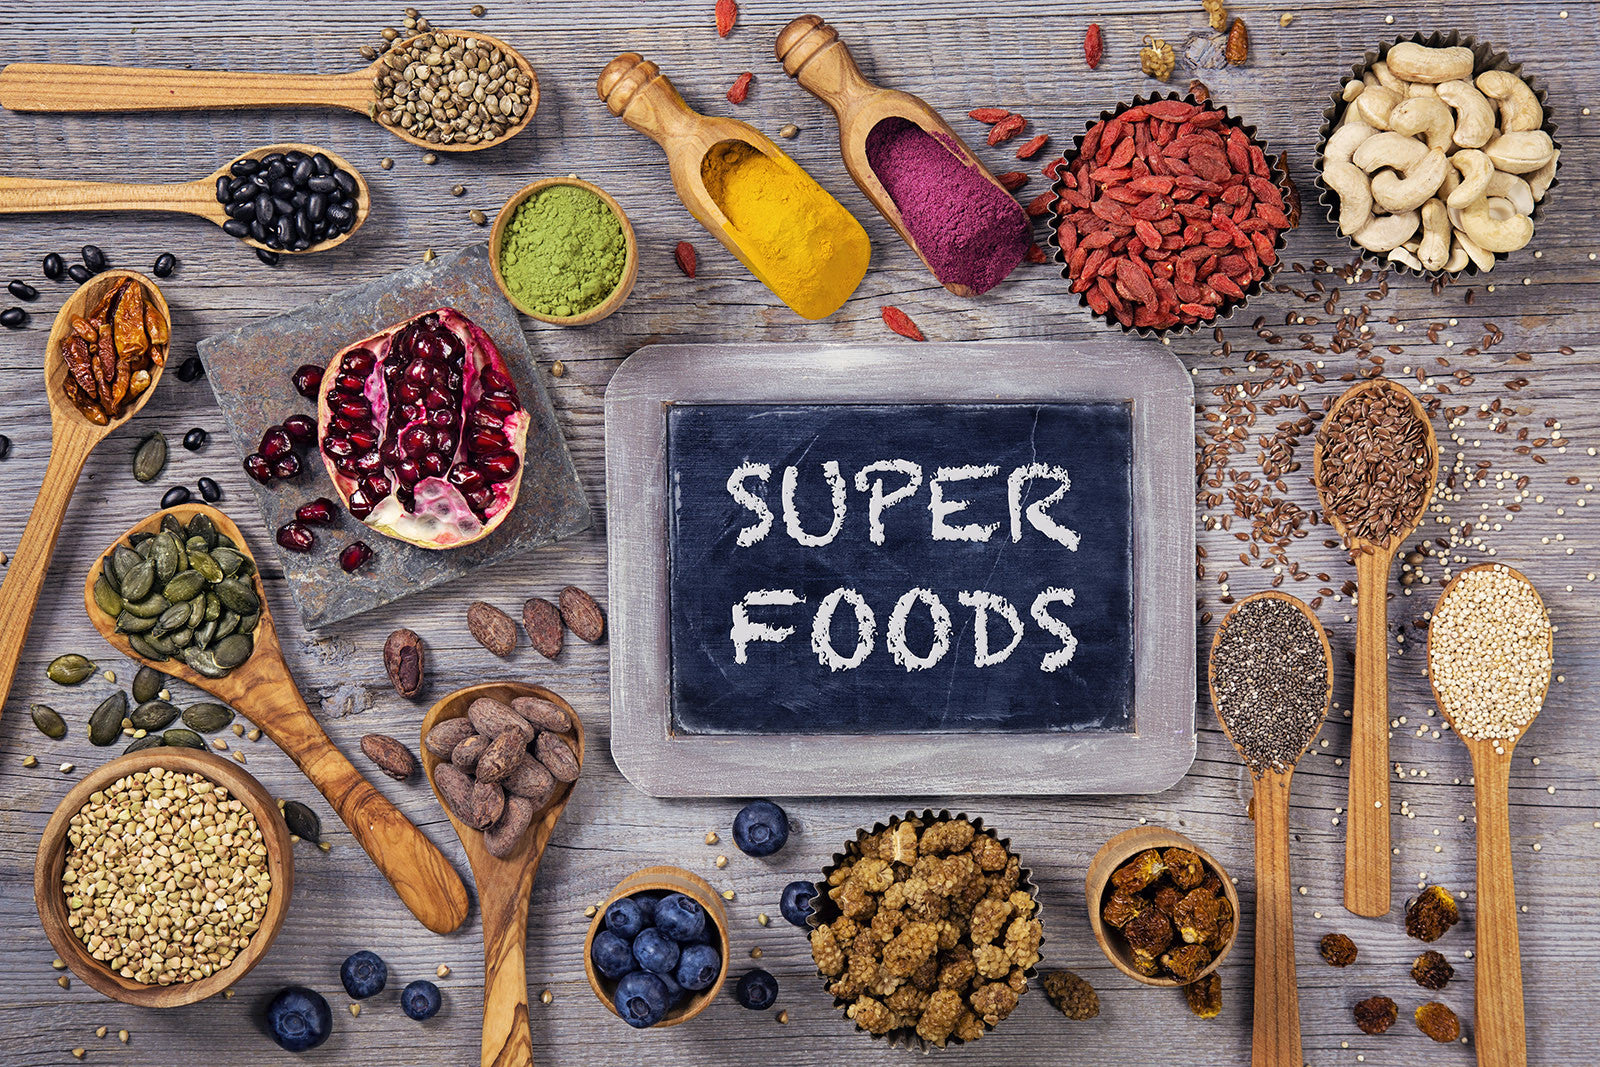 Superfoods to the Rescue? Separating Fact from Agenda